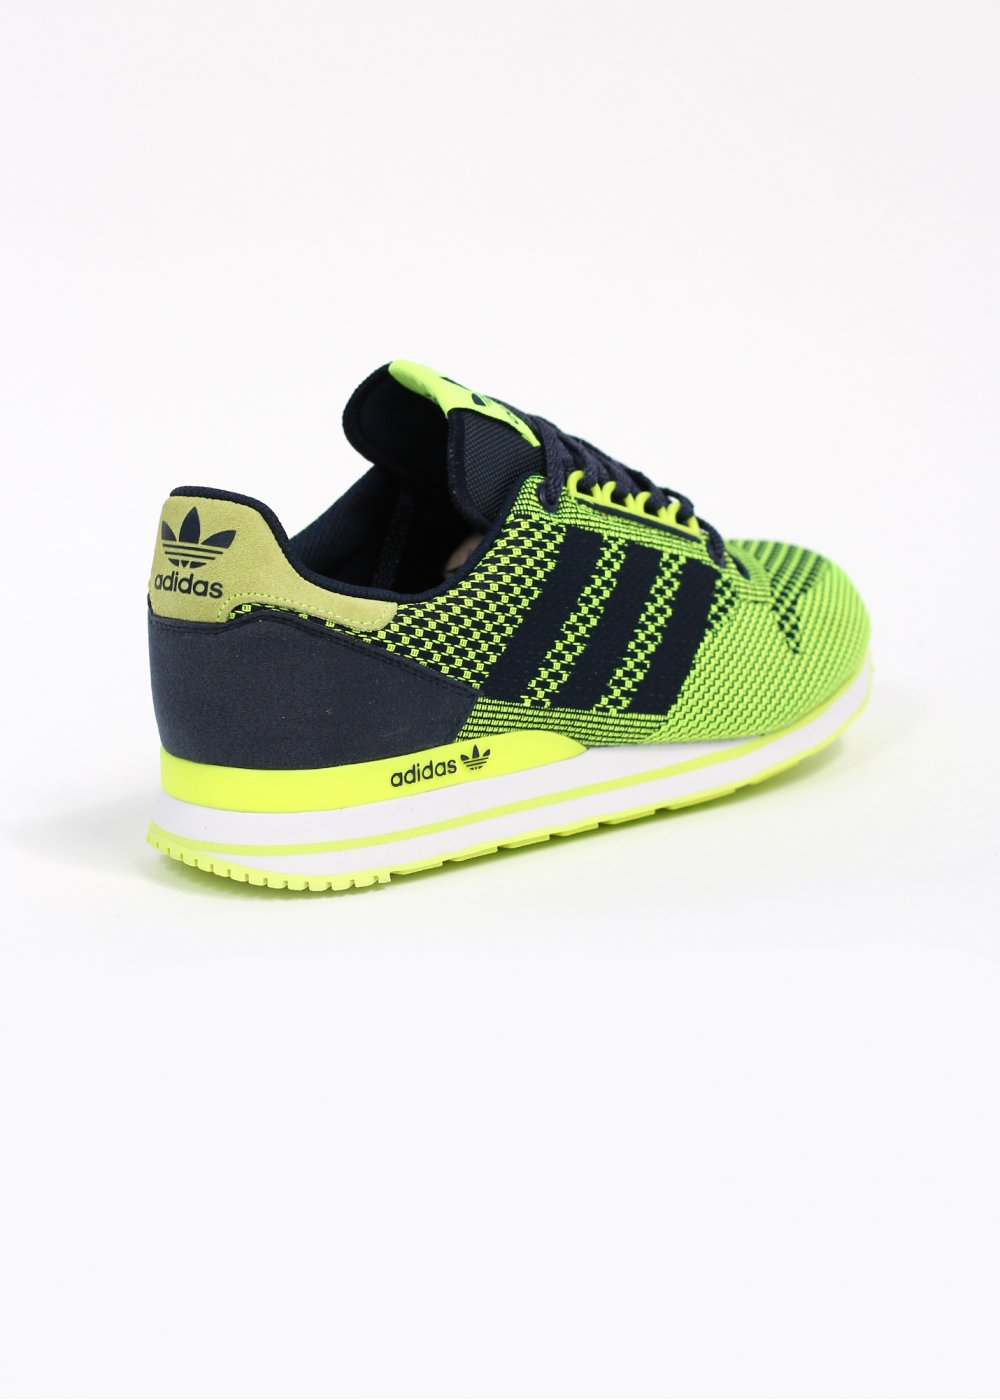 adidas zx 500 kids yellow